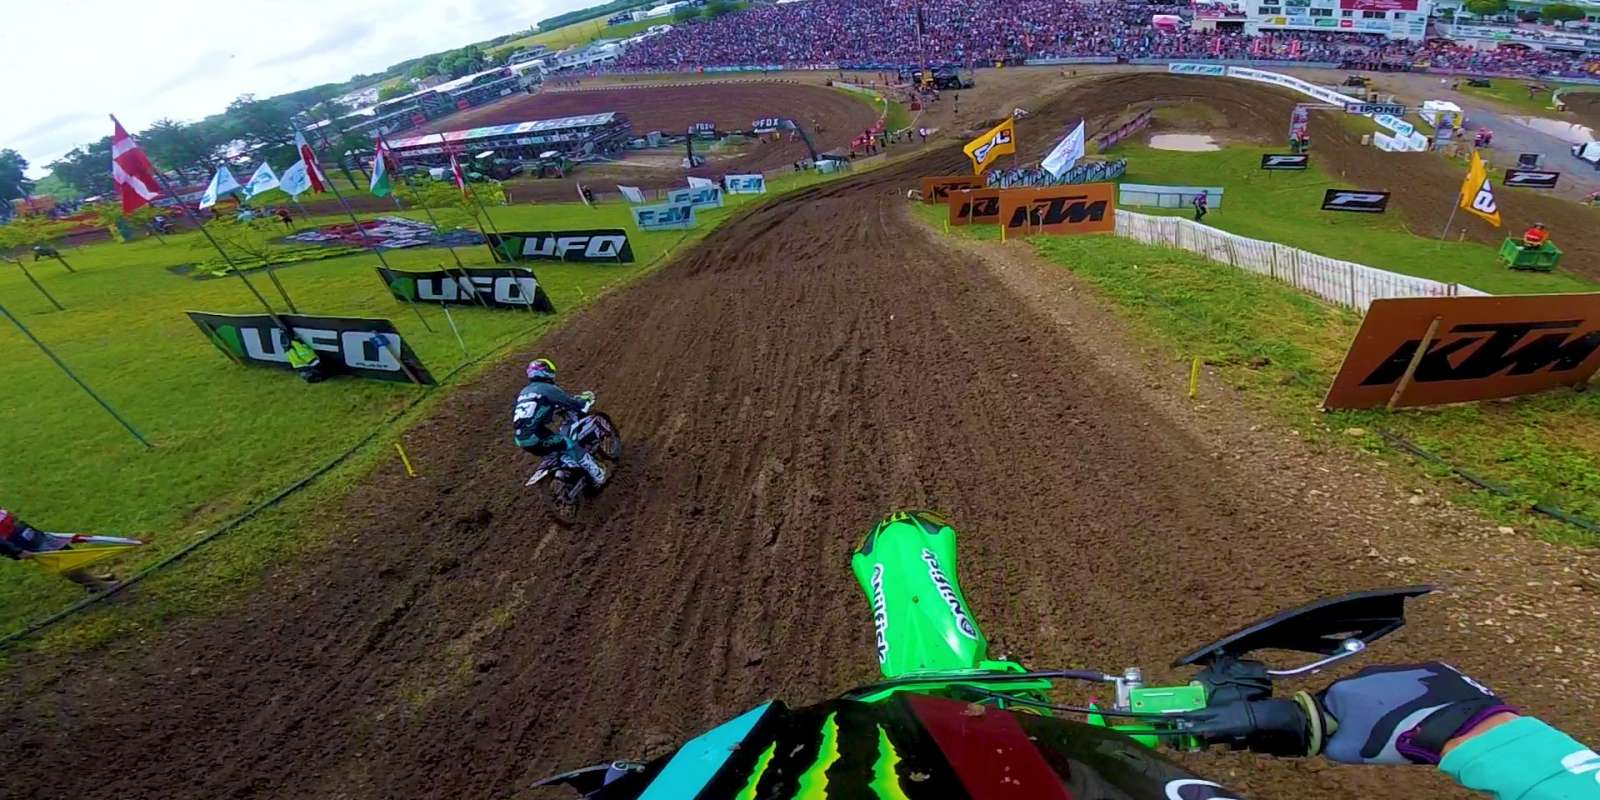 shot from the MXGP France 2018 Pierre Goupillon's video